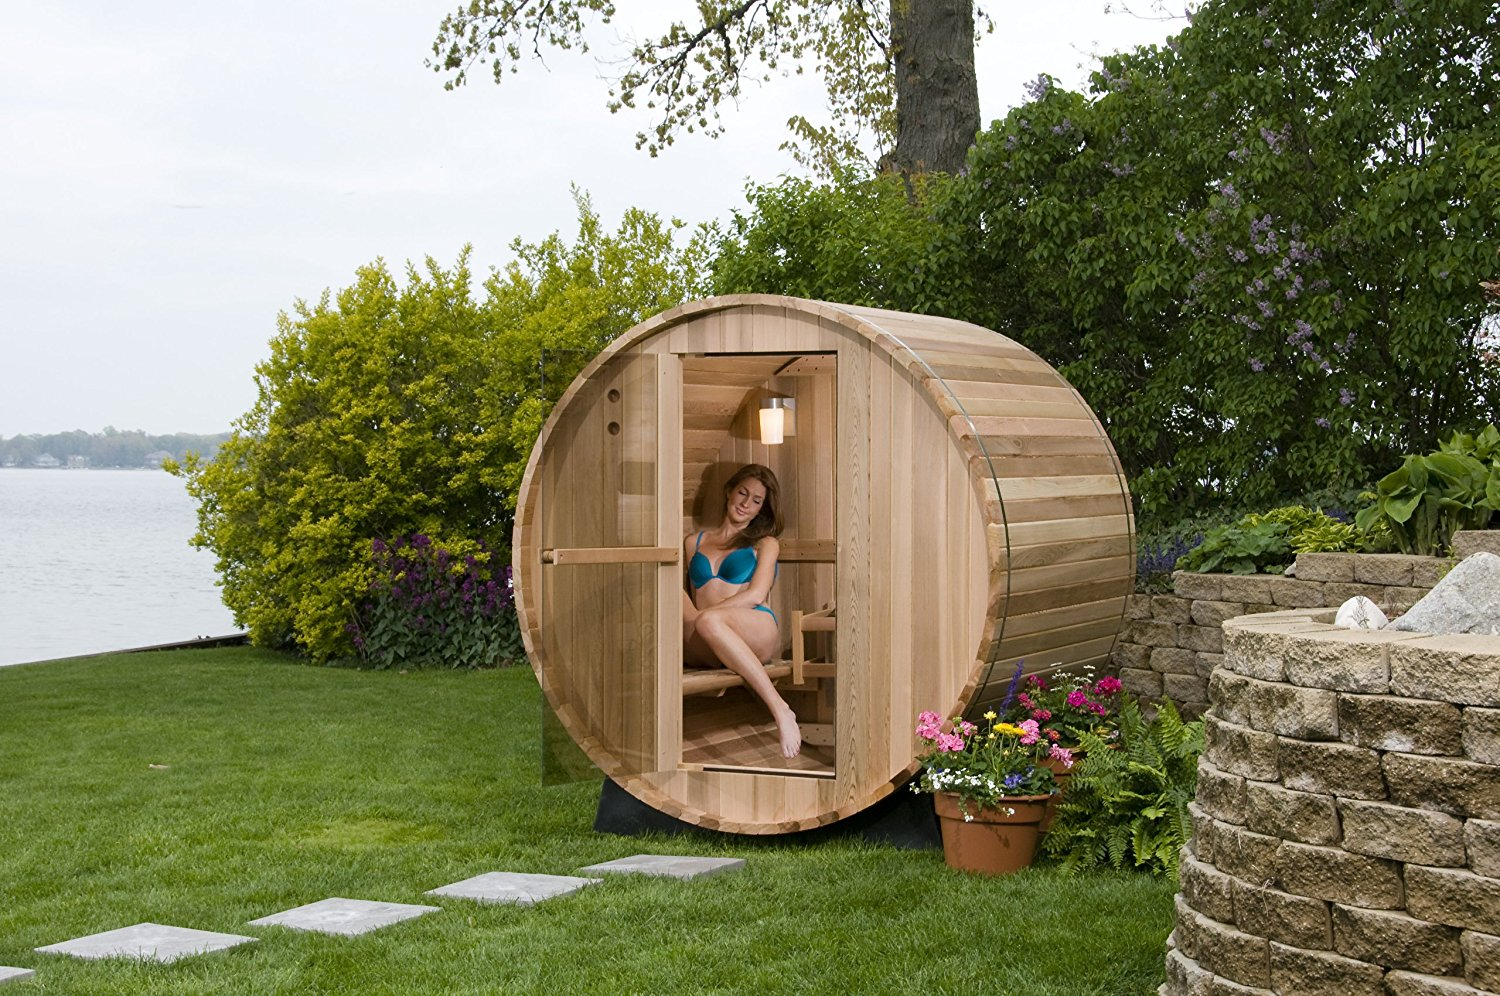 Sauna Outdoor Outdoor Saunas - If If Can't Fit Inside Your House, There ...